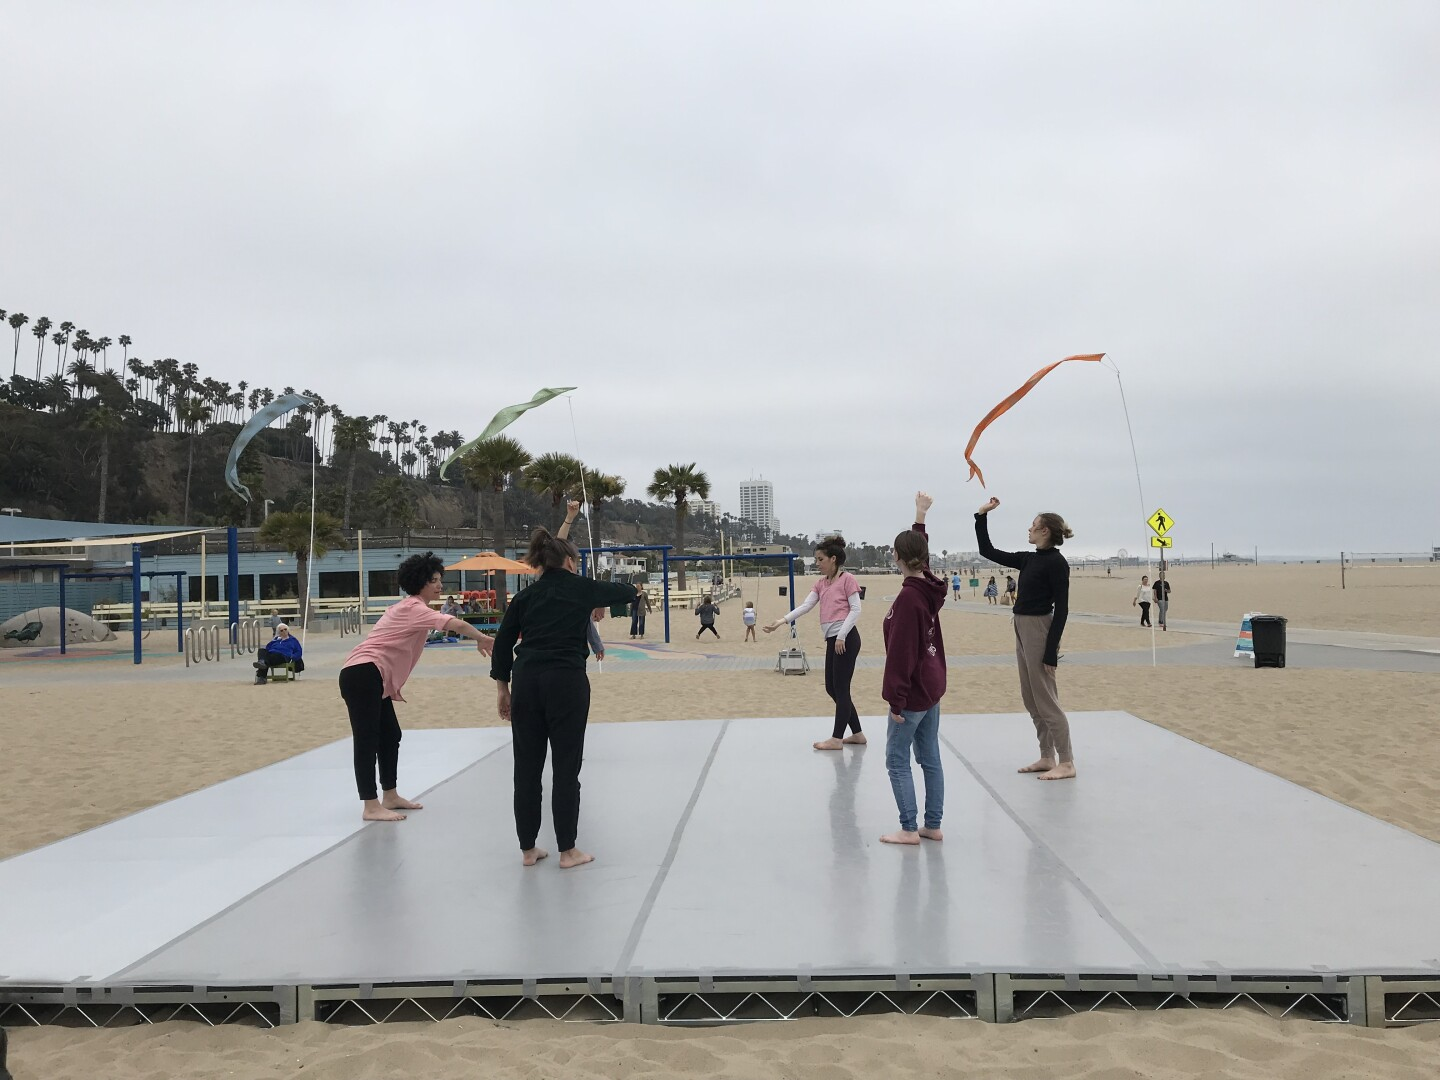 Participants stand on a platform placed on top of the sand at Santa Monica Beach. The participants are waving around different colored scarves in the air. The sky above them is overcast.